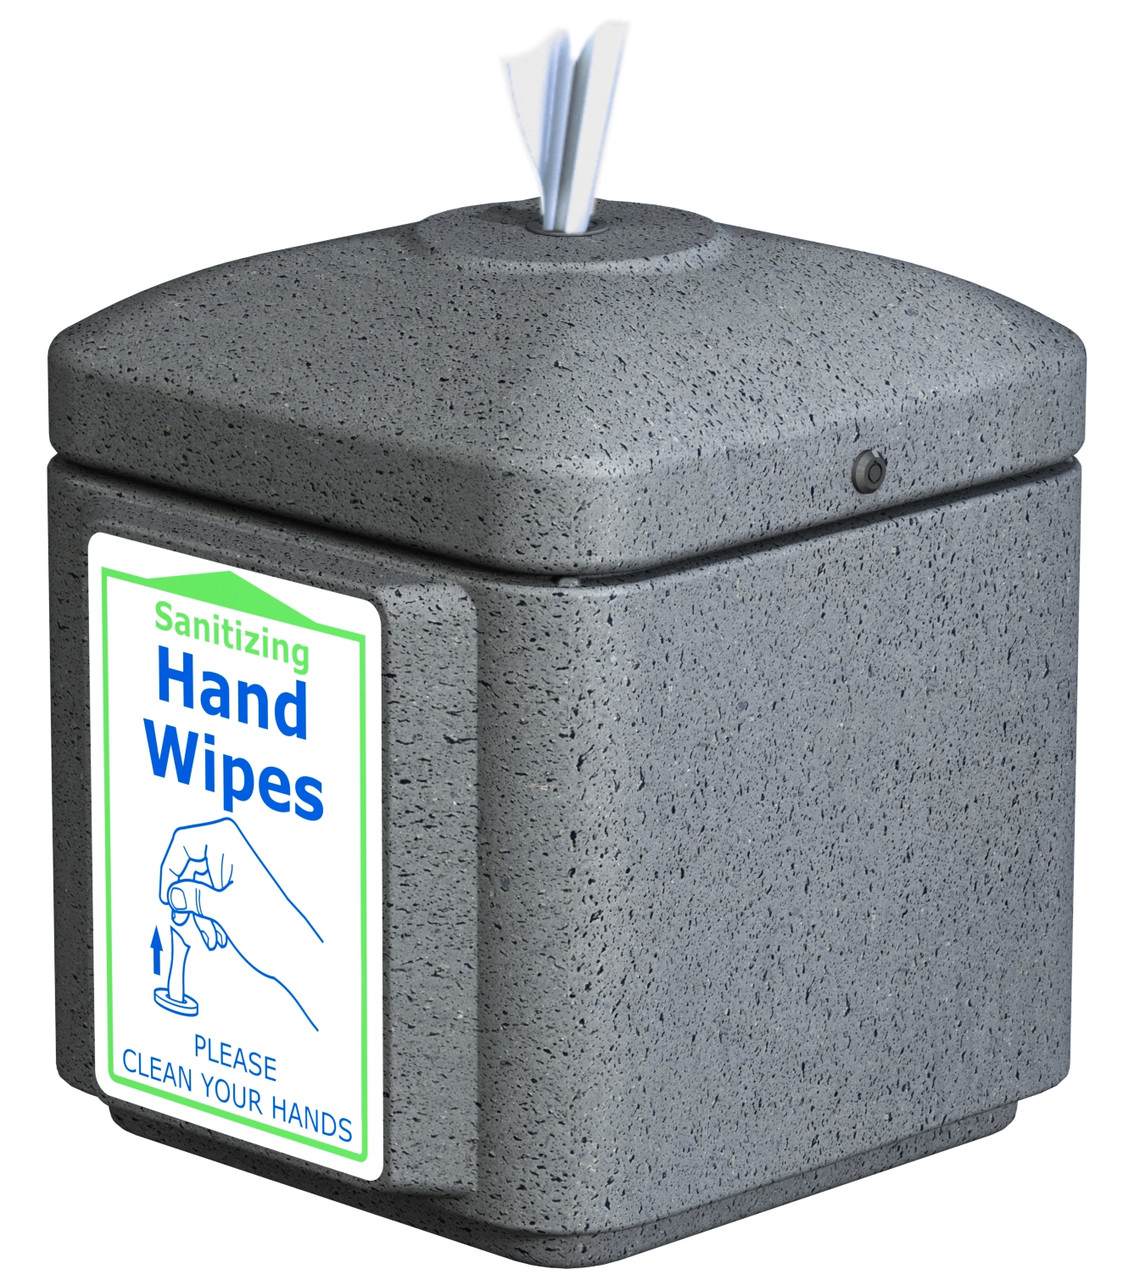 Sanitizing Wipe Dispenser Wall Mount 8003256 (GRAY, With 900 Wipes)